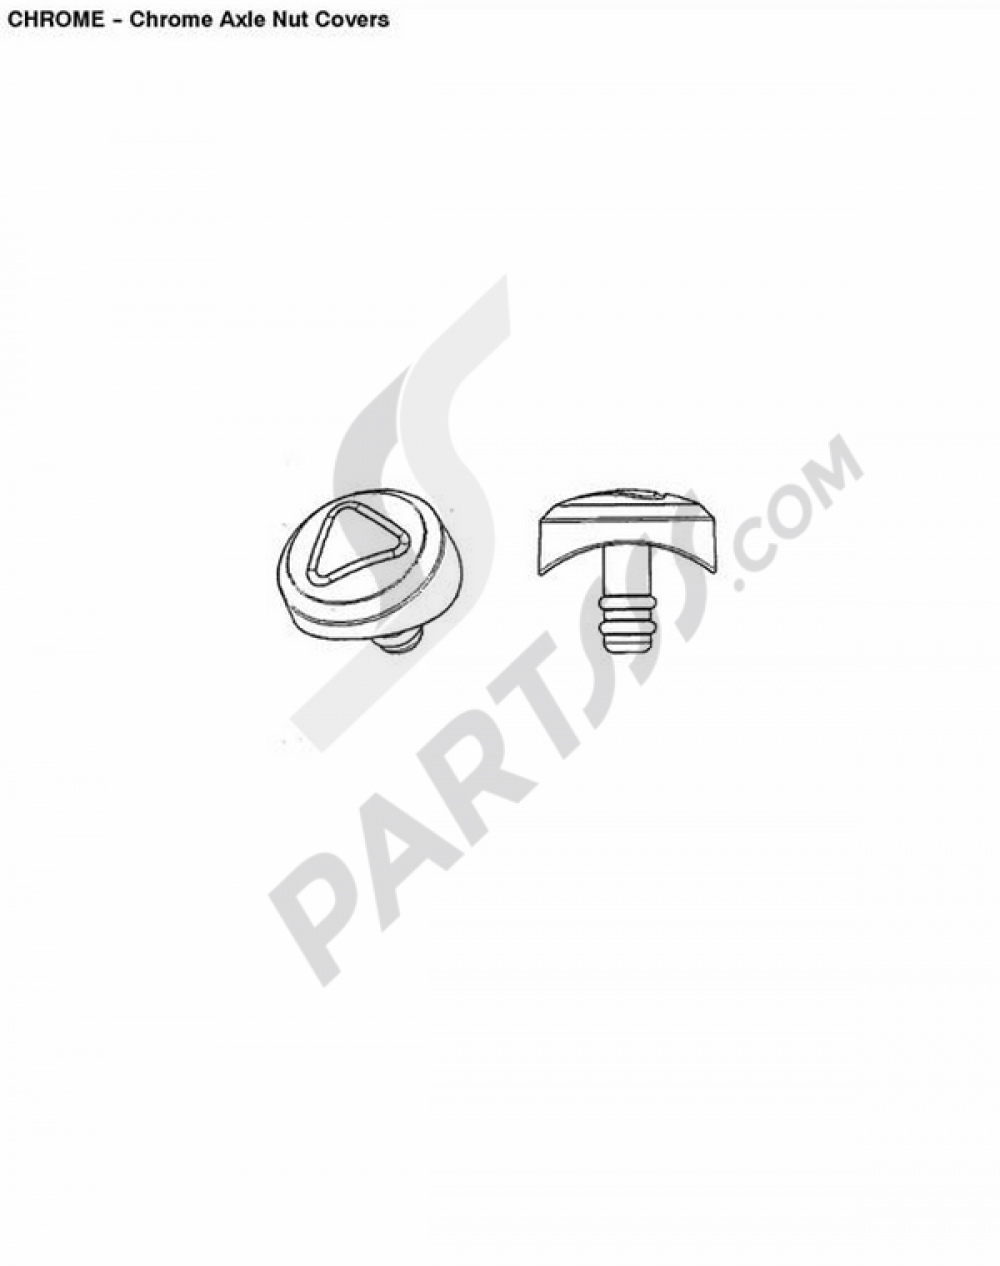 Chrome Axle Nut Covers Triumph ROCKET III CLASSIC & ROADSTER